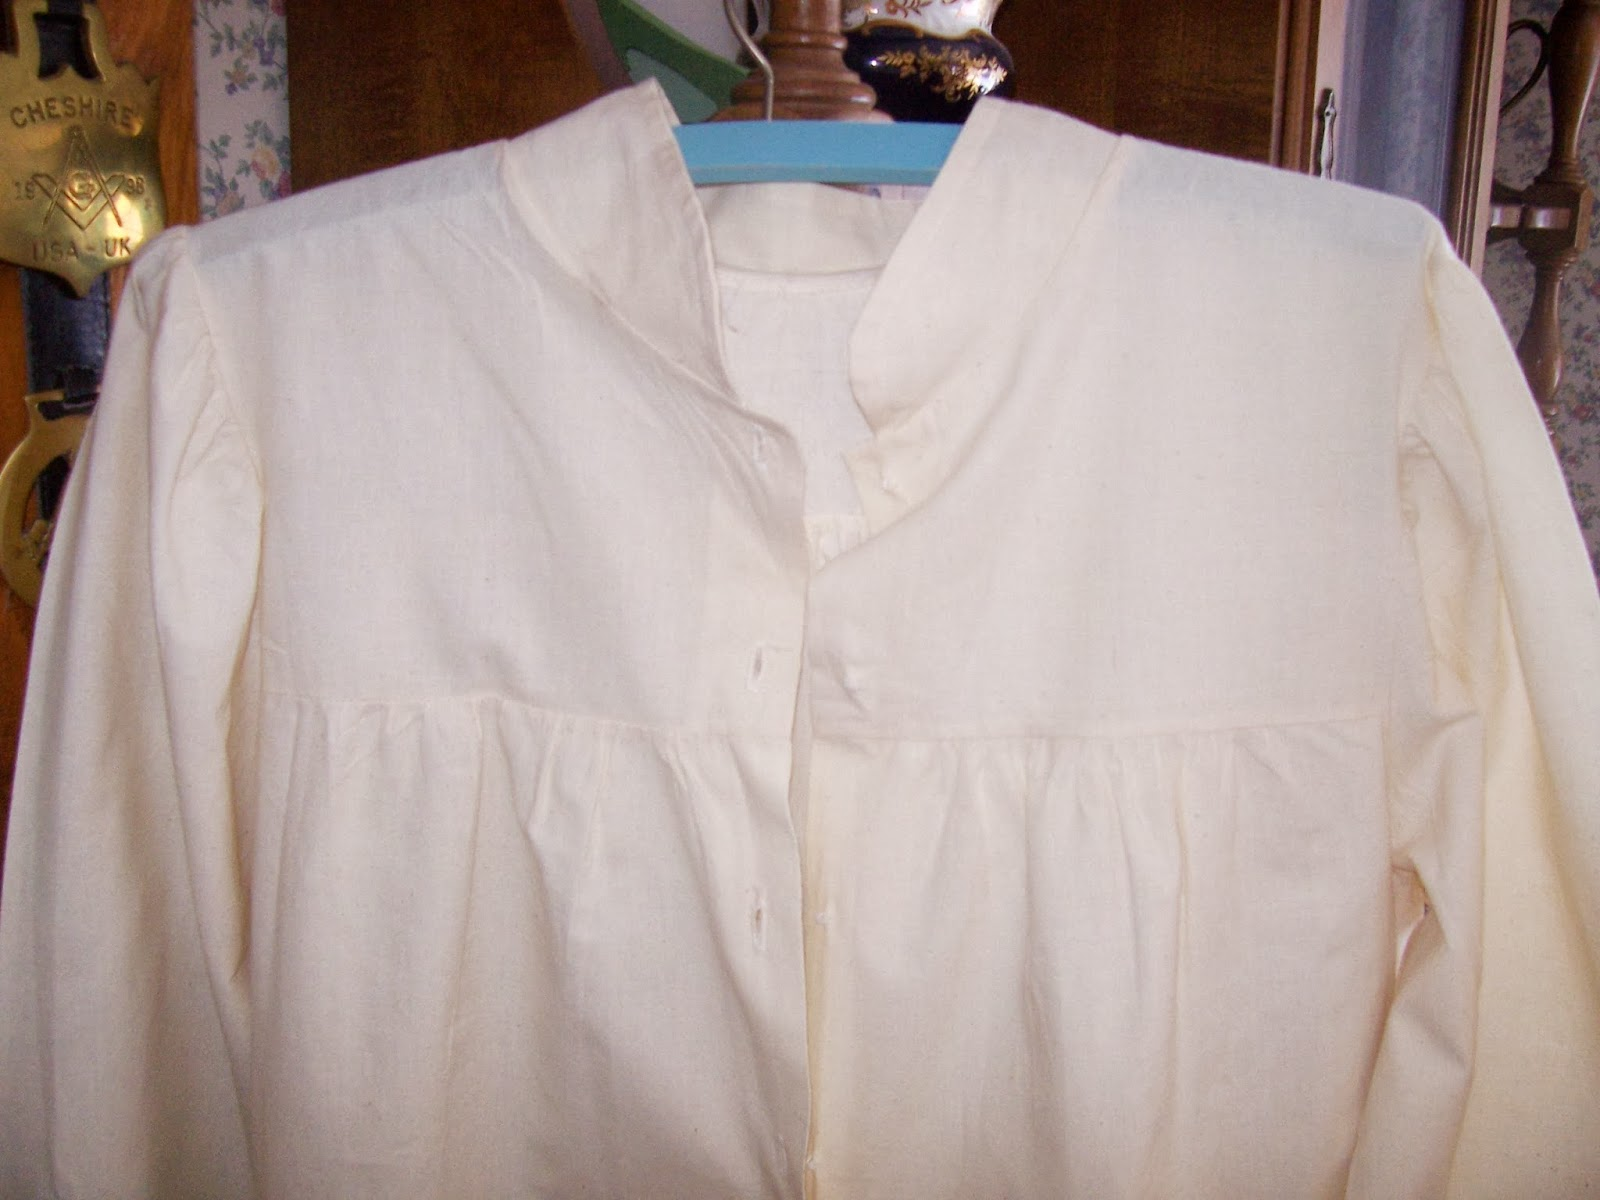 Back Stitches: Challenge #1: Make Do and Mend - Old-Fashioned Nightgown